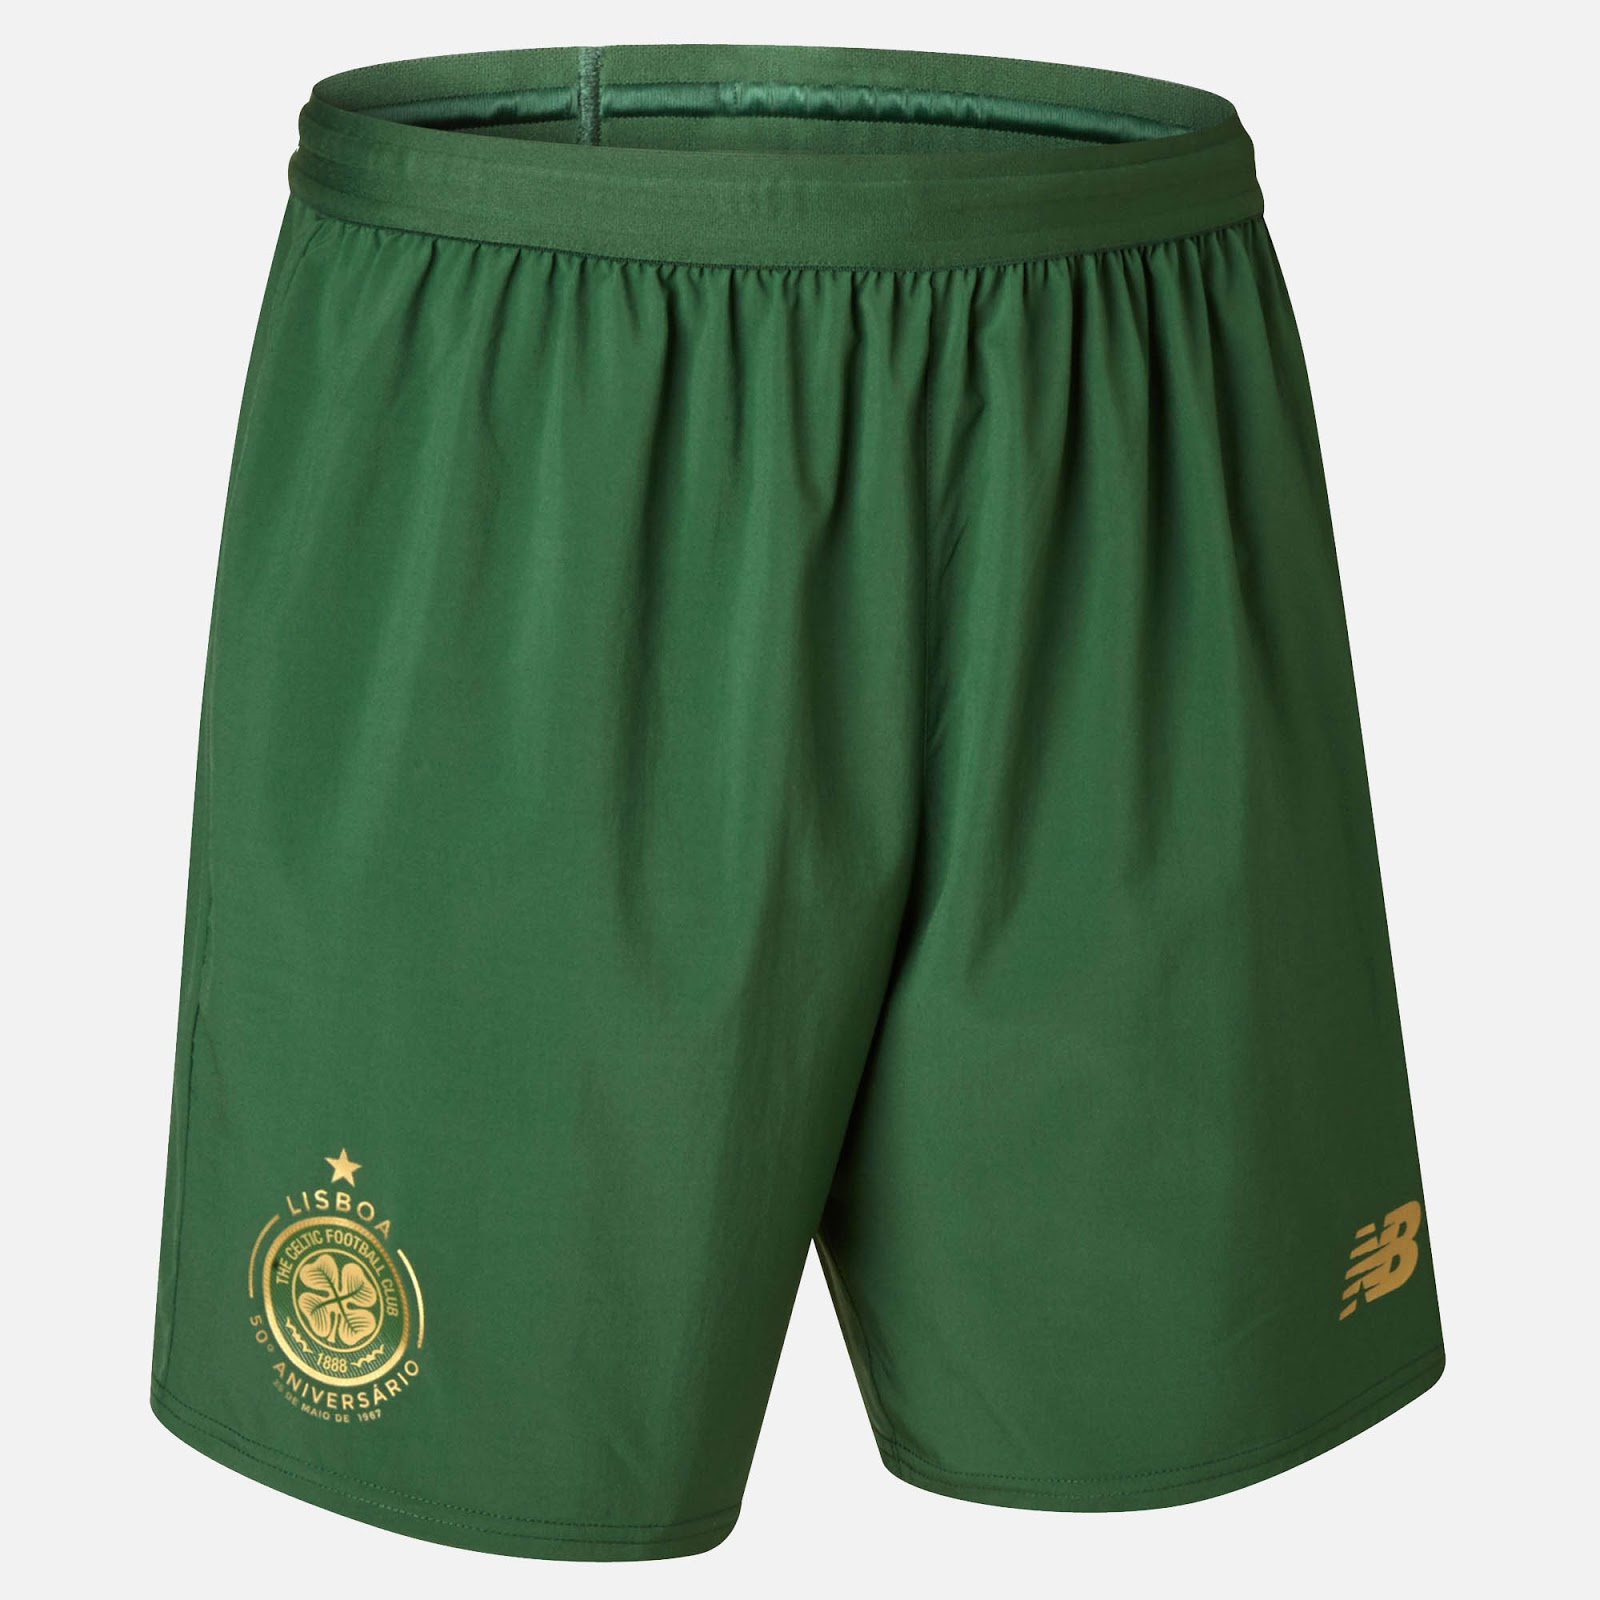 celtic-17-18-away-kit-shorts